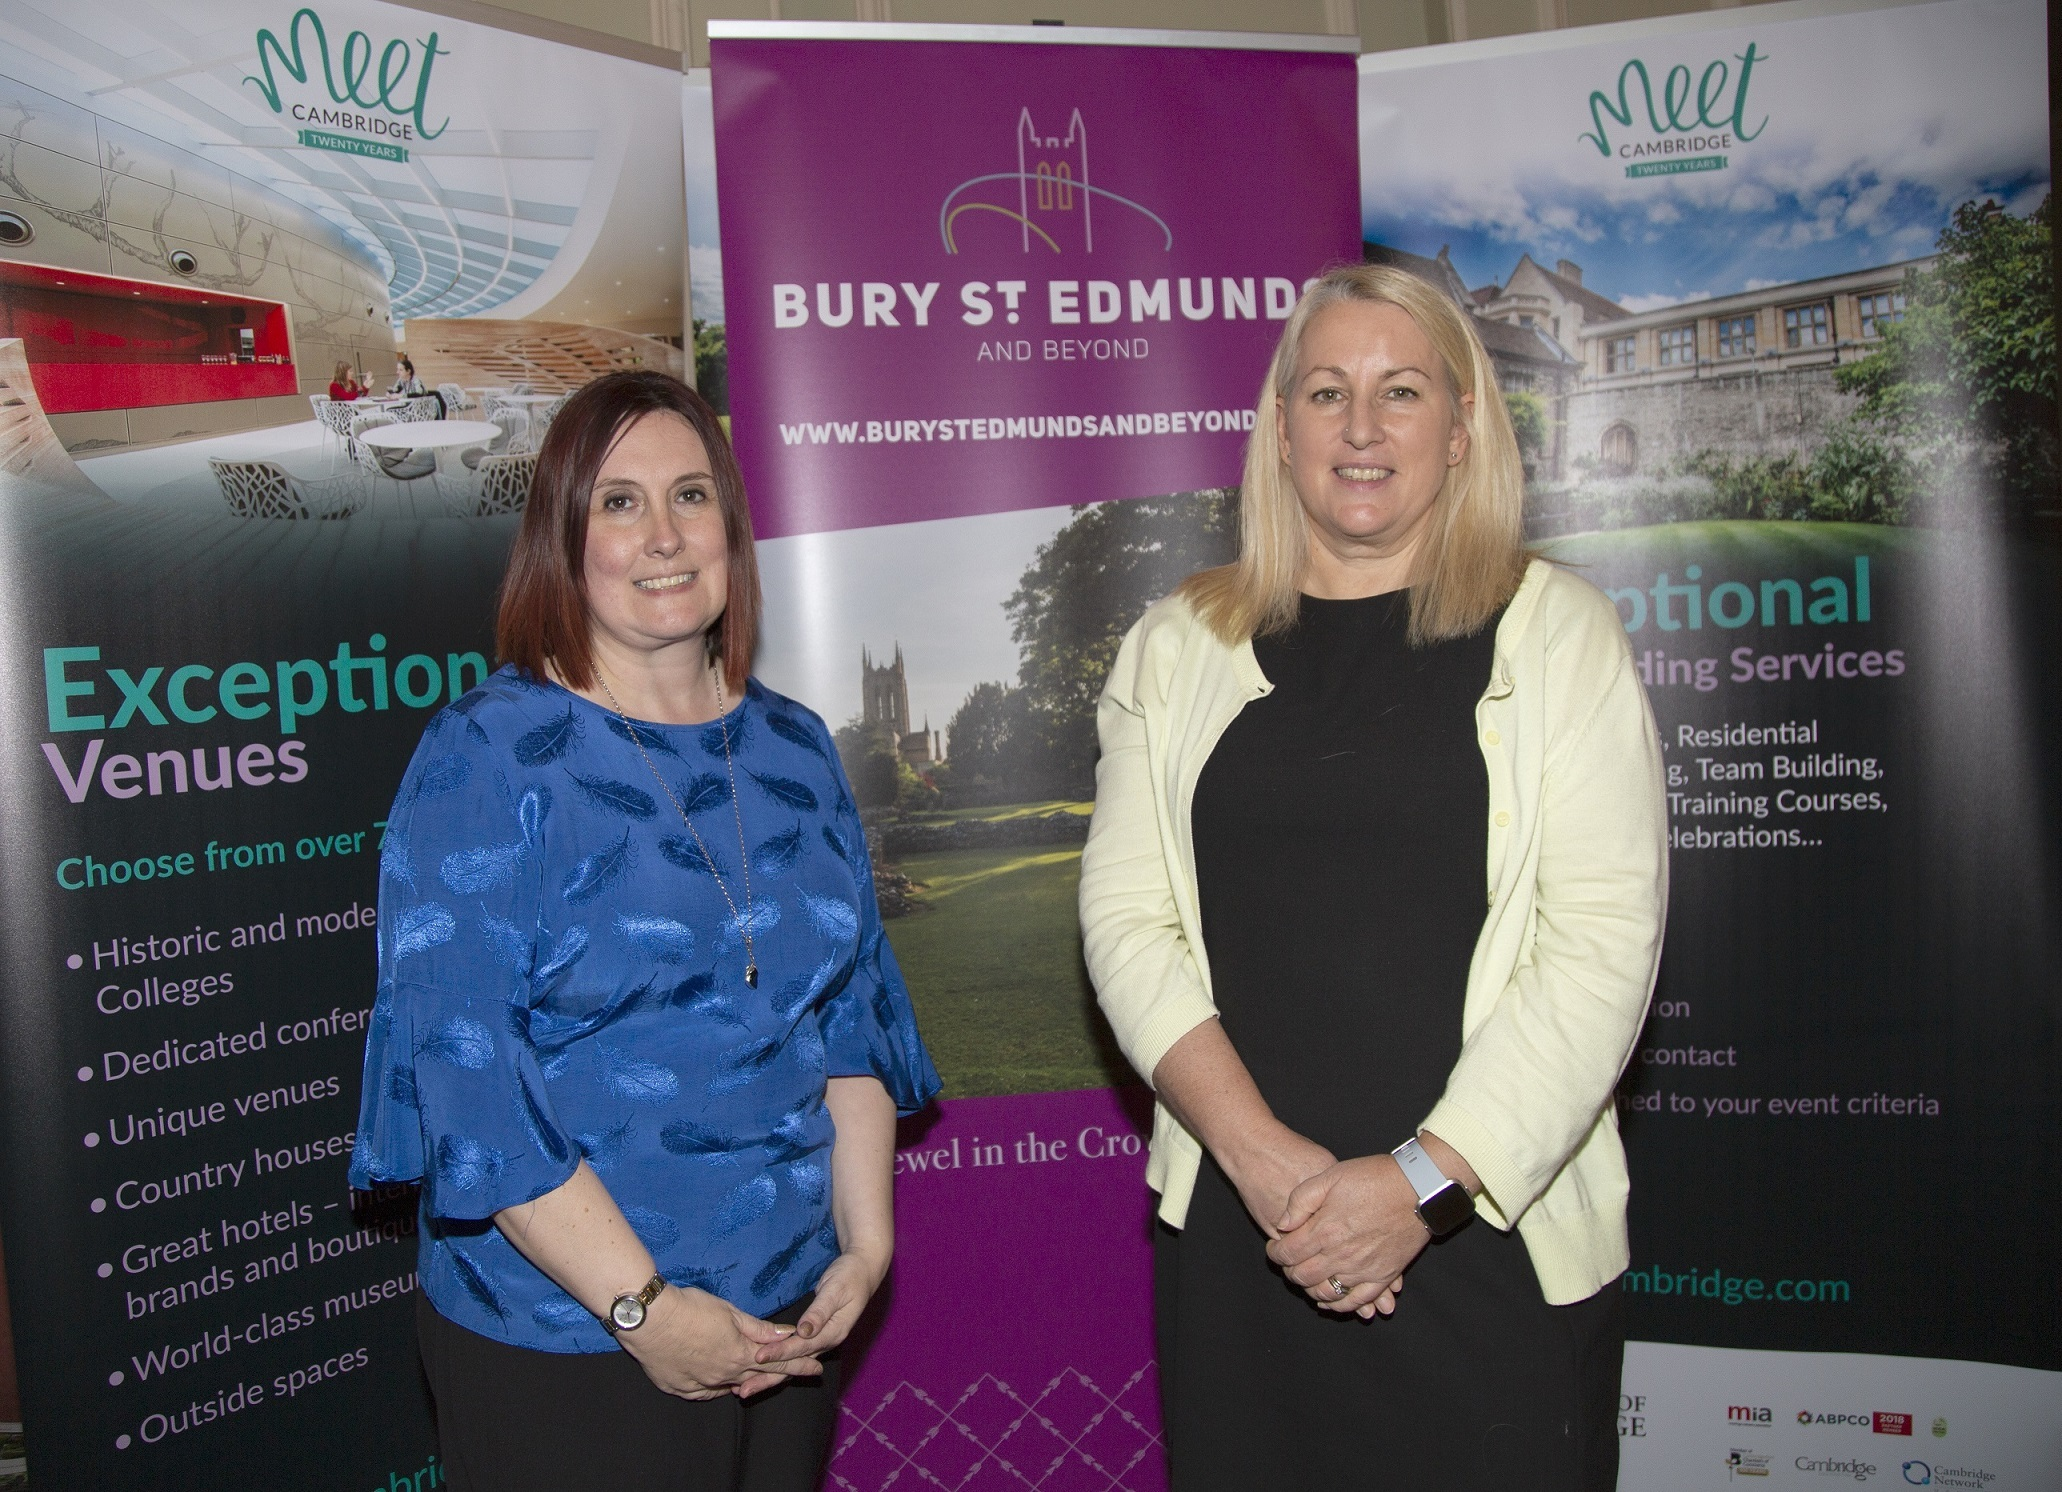 New partnership aims to increase business tourism